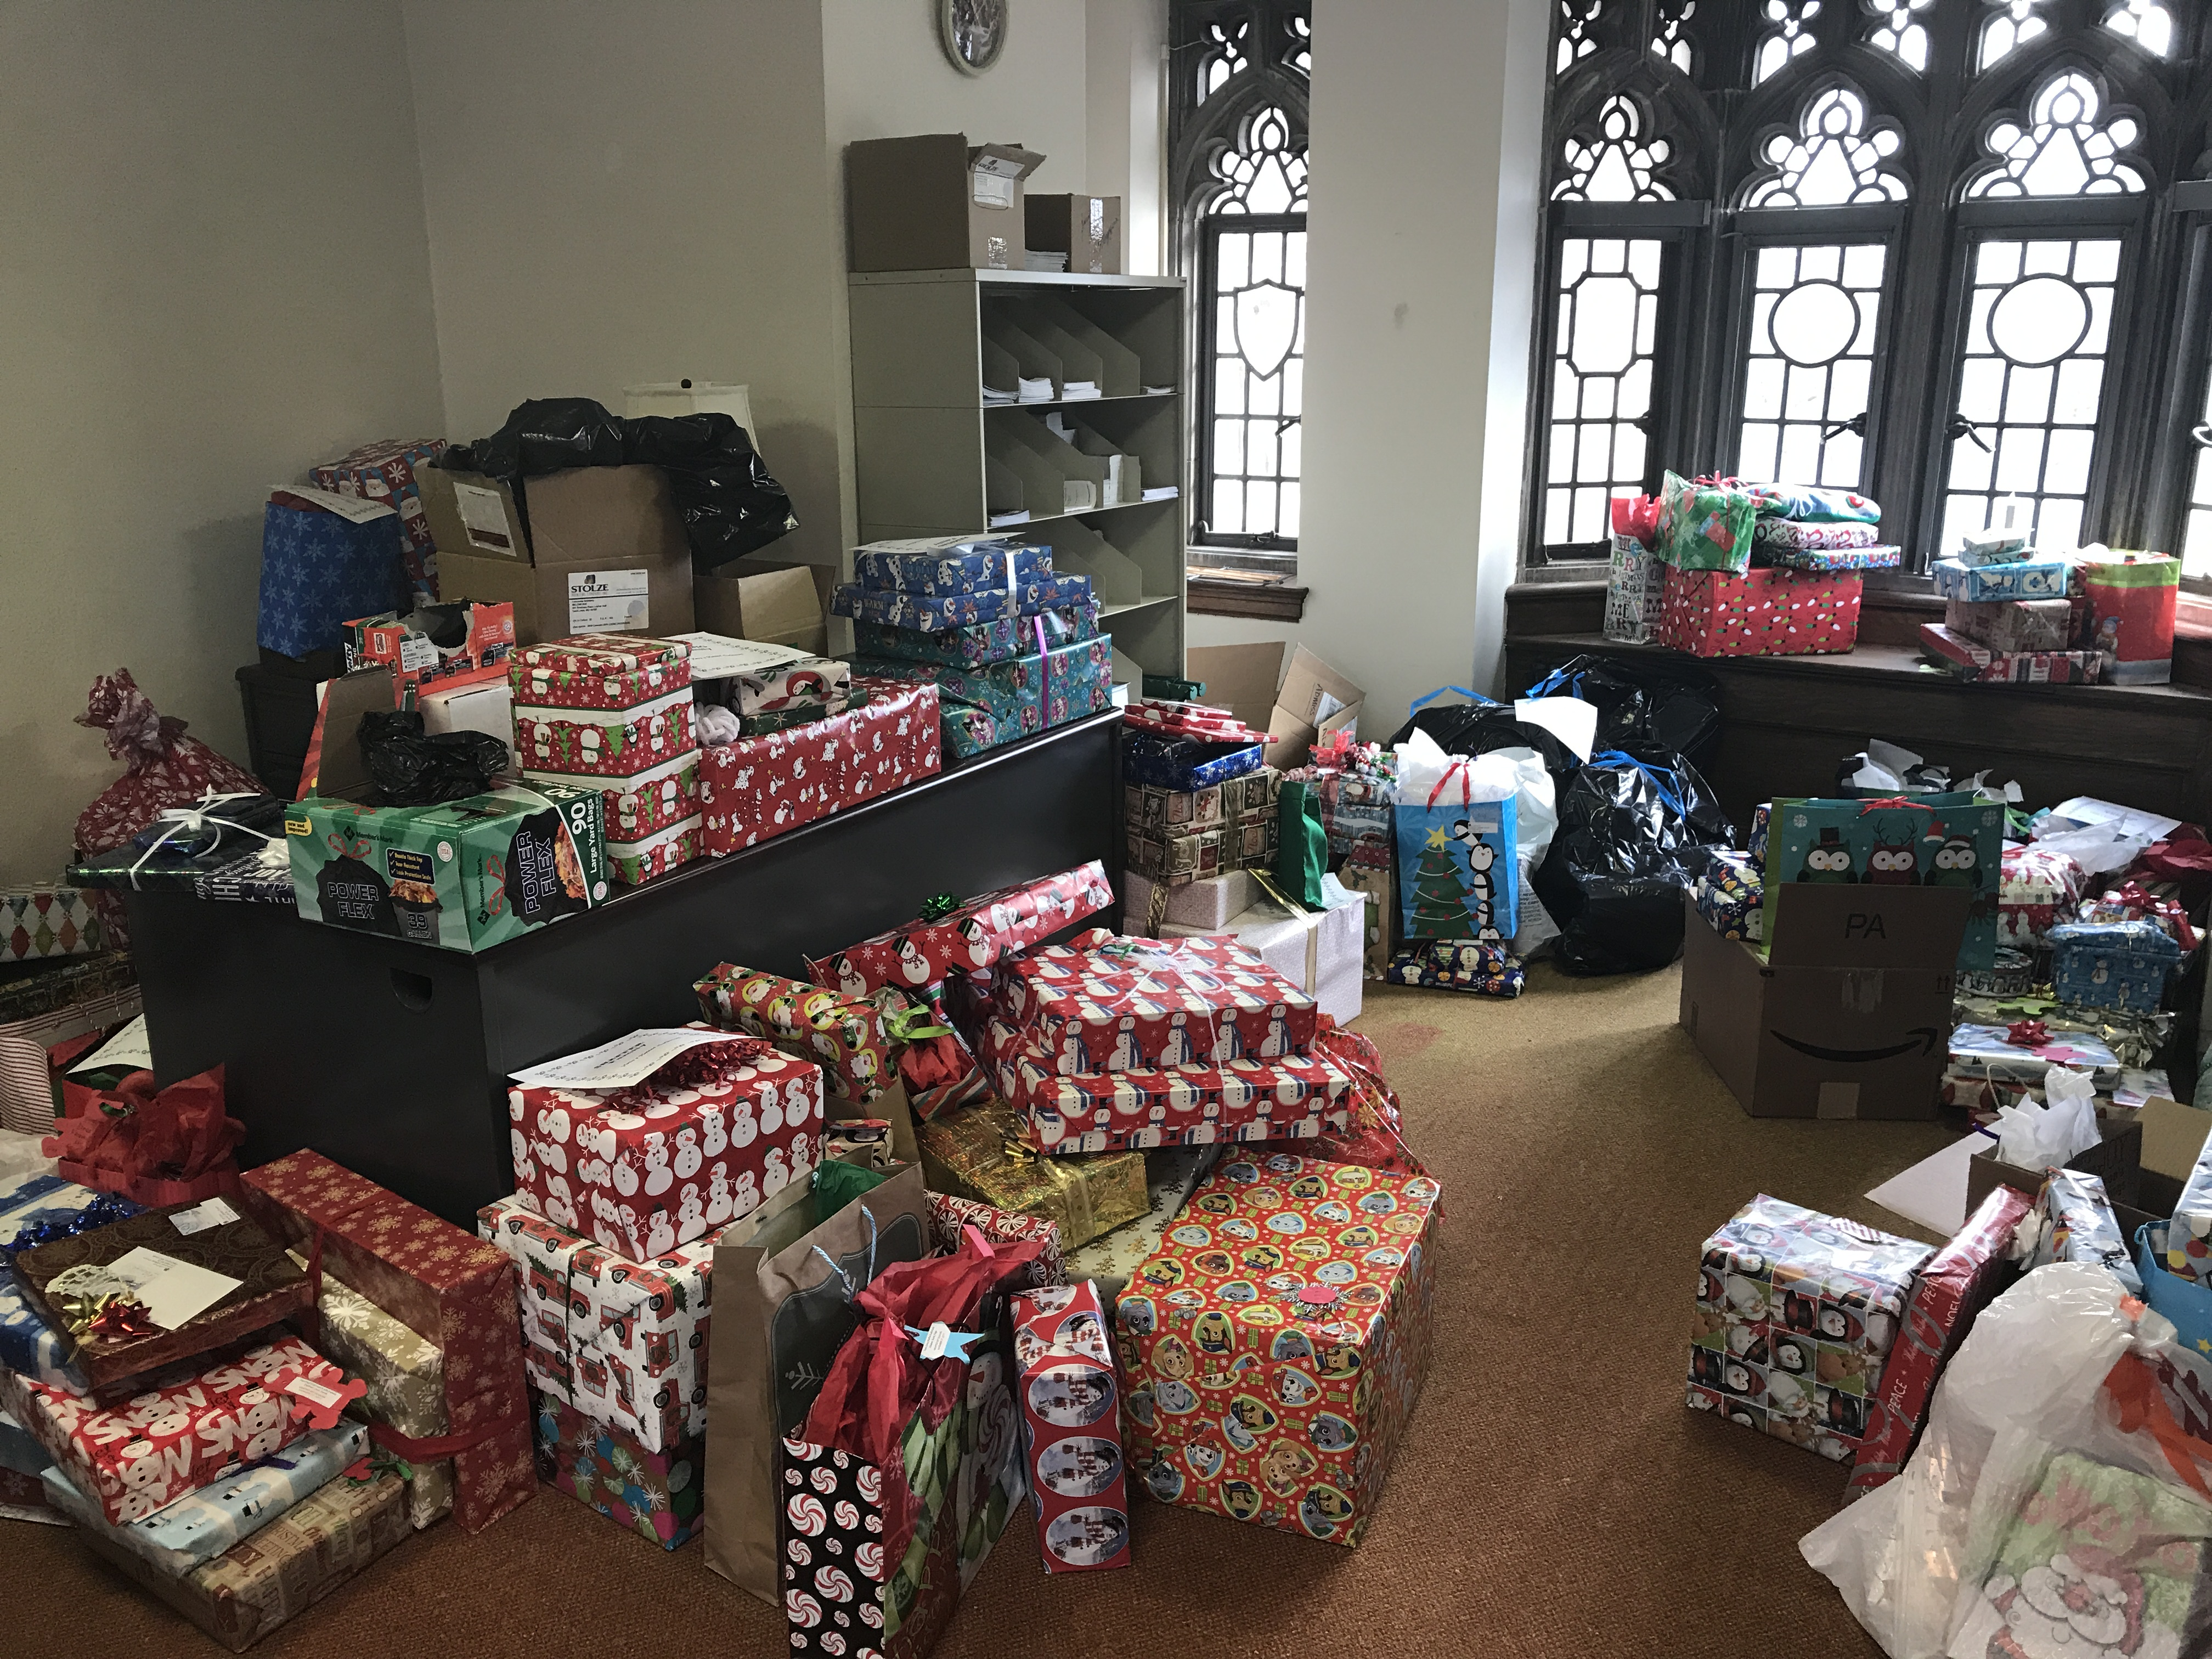 Congregations provide Christmas cheer - Concordia Seminary